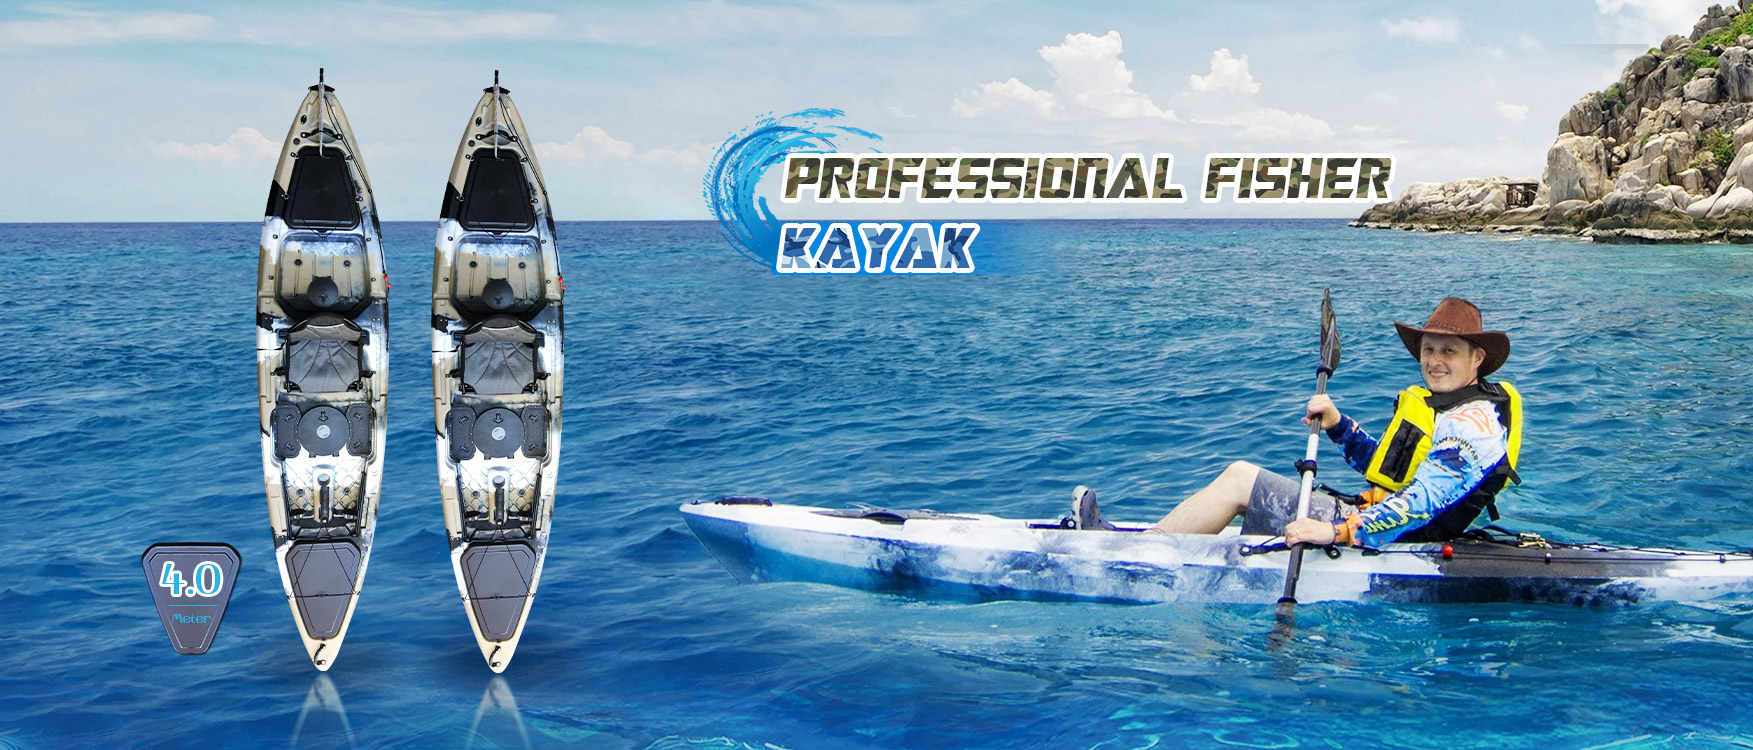 China Foot Pedal Fishing Kayak Manufacturers And Suppliers Factory Quotes Oceanus